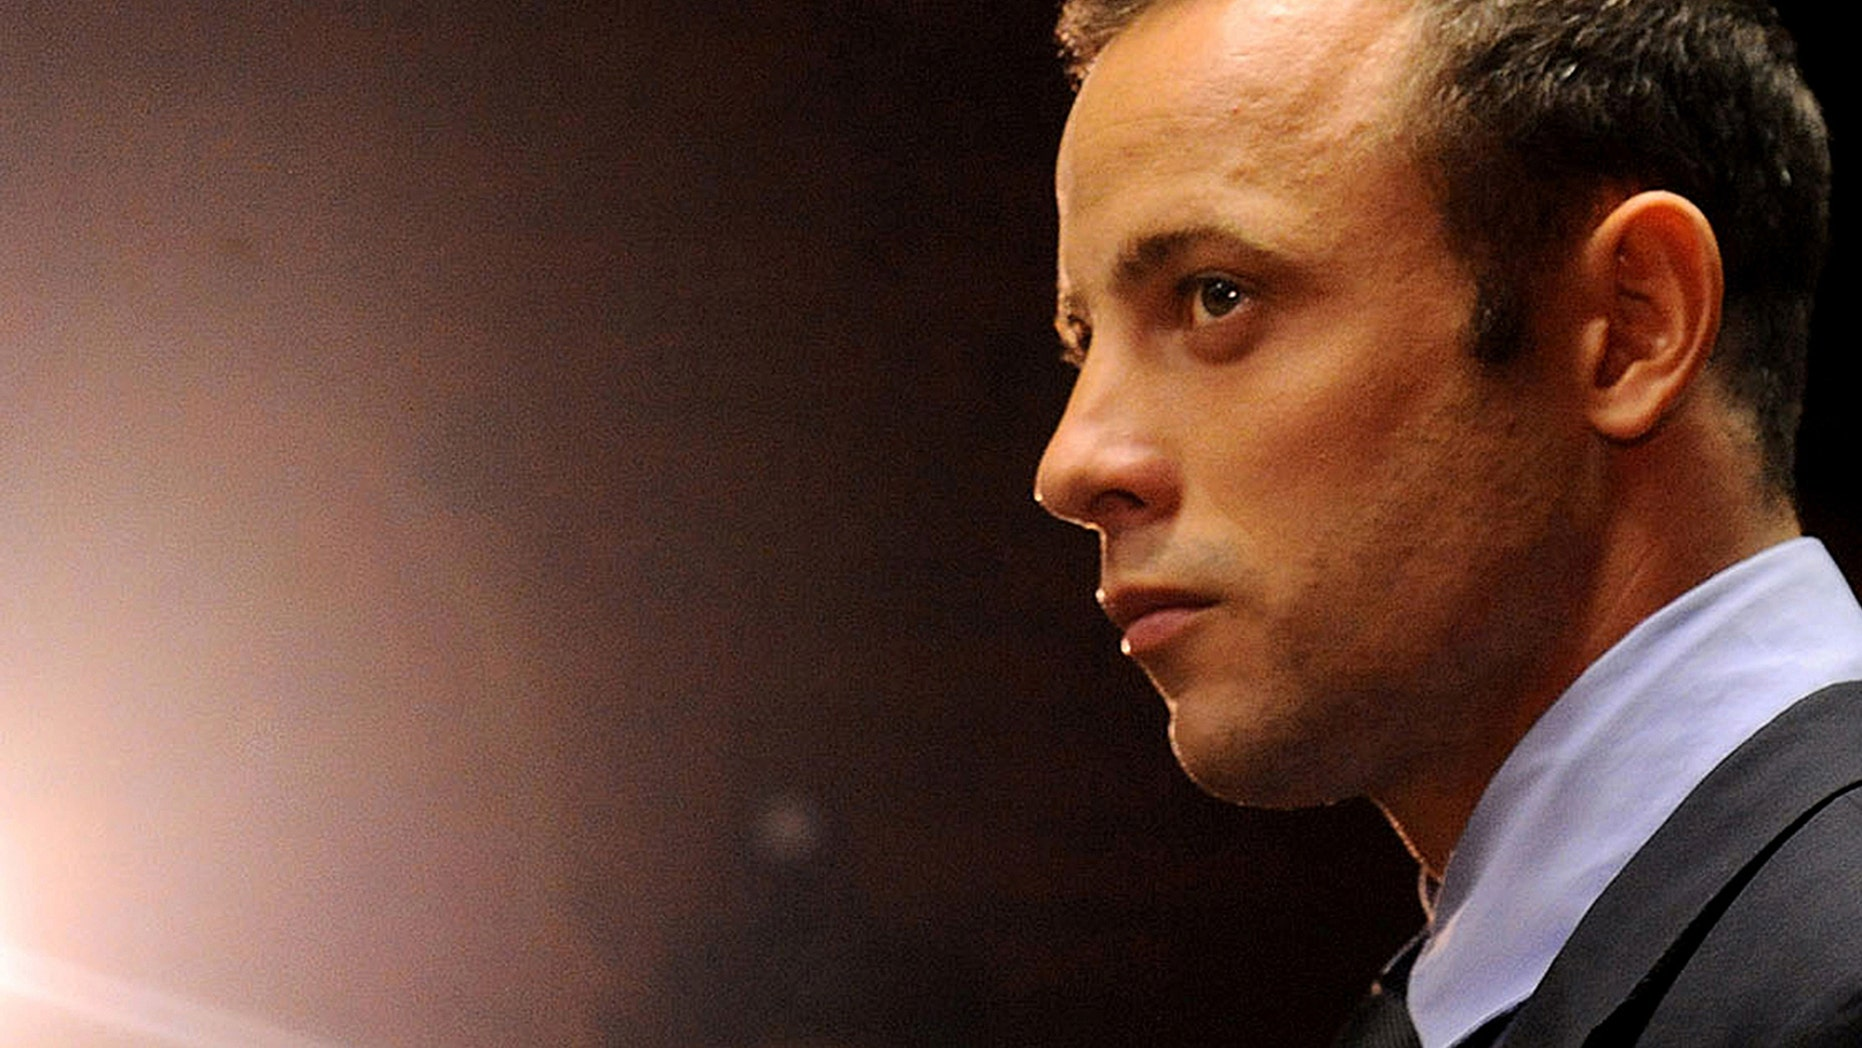 FILE - In this Friday, Feb. 22, 2013 file photo Olympic athlete Oscar Pistorius stands in the dock during his bail hearing at the magistrates court in Pretoria, South Africa. Pistorius is scheduled to re-appear in a South African court on Monday Aug.19, 2013. The the 26-year-old double-amputee Olympian will be indicted on a main charge of premeditated murder of his his girlfriend, Reeva Steenkamp. According to reports Sunday Aug.18, prosecutors have confirmed they will maintain the charge they initially laid against Pistorius (AP Photo/Themba Hadebe, File)